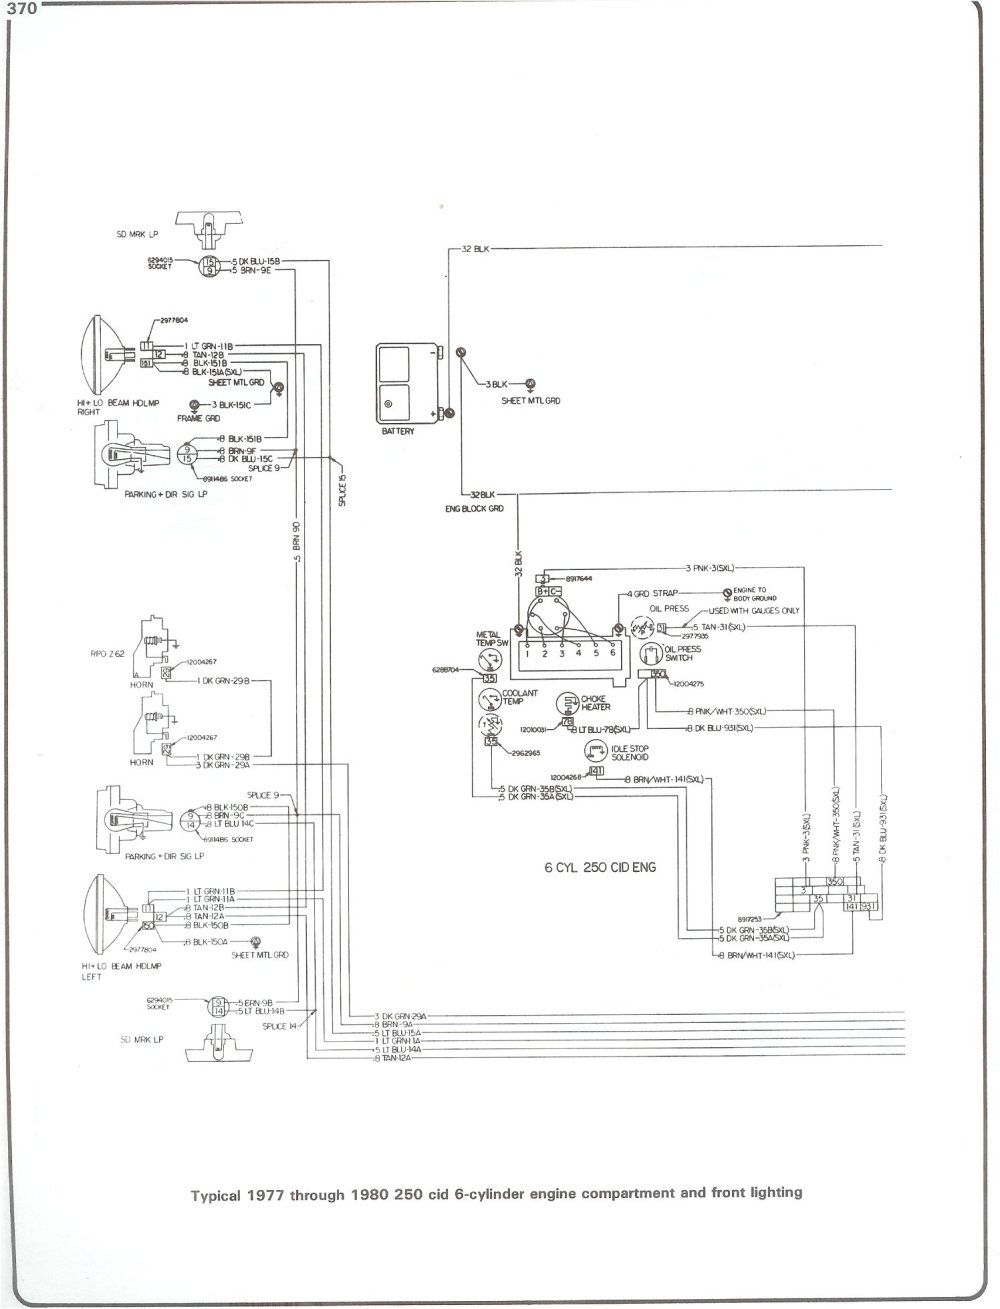 medium resolution of 85 gm 454 truck wiring diagram wiring diagram centre86 chevy 454 truck wiring diagram wiring diagram